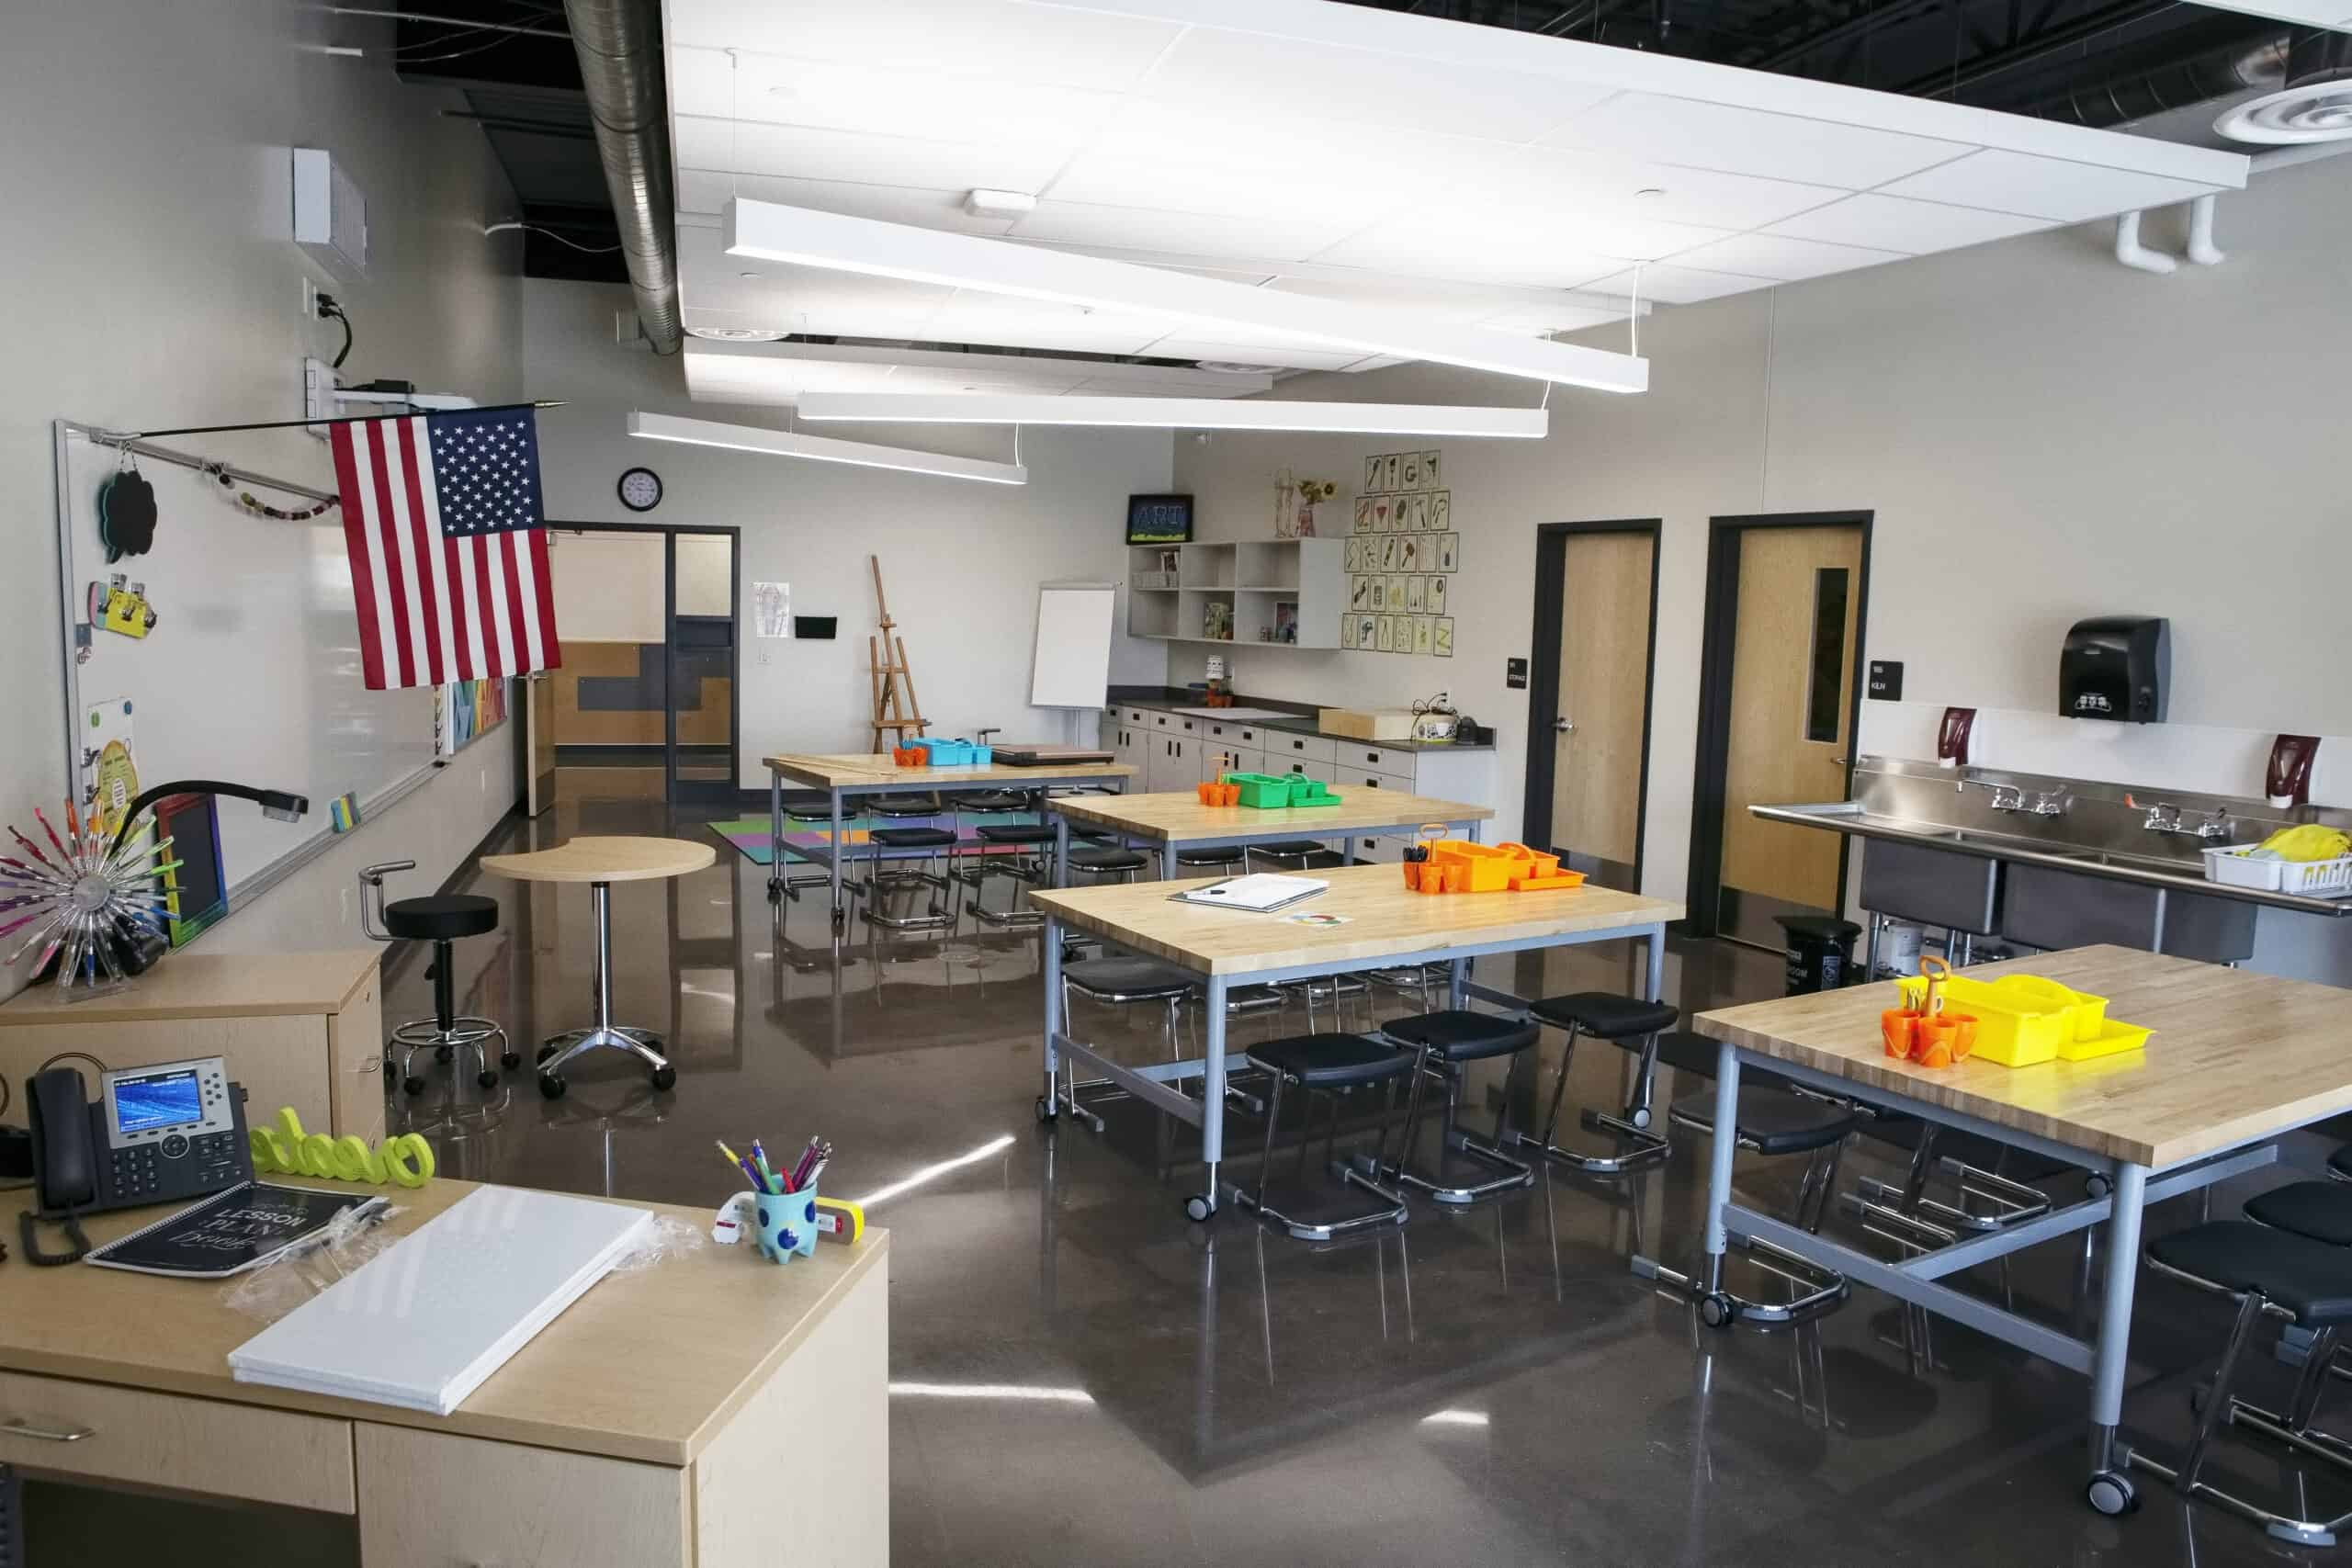 Grand View art room